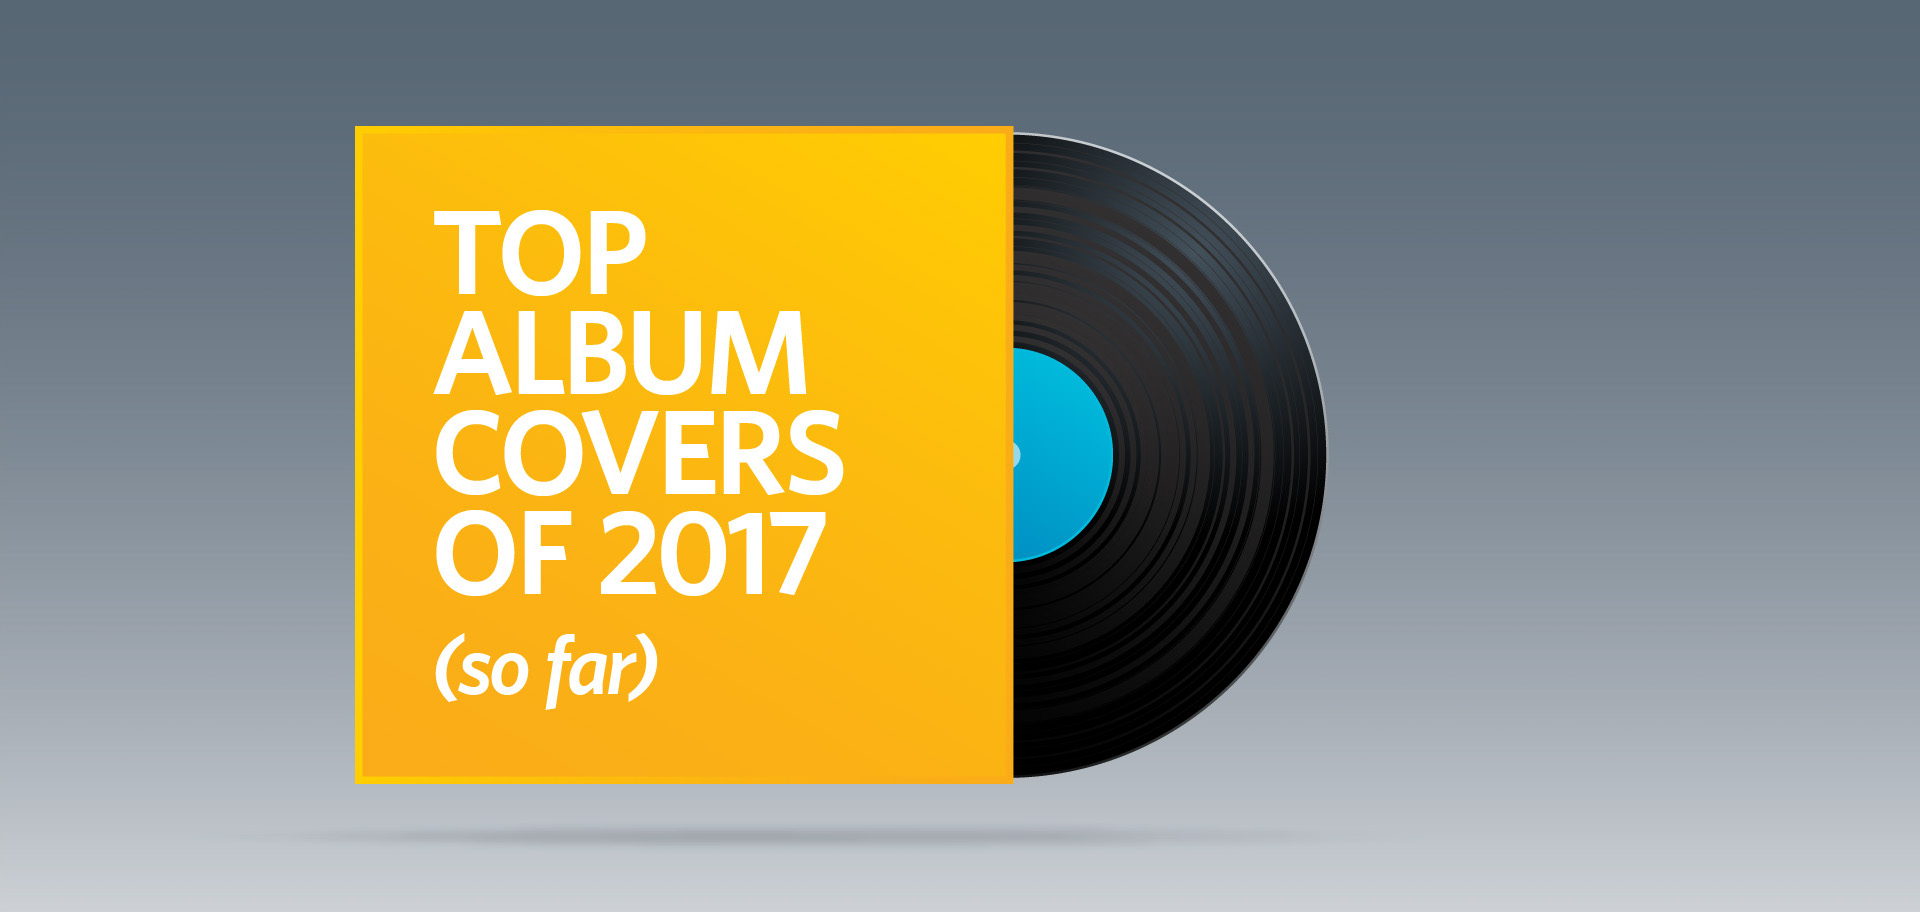 Top album covers 2017, best album artwork, album art, Kettle Fire Creative album cover Top 17 Album Covers of 2017 (so far) top albums fi